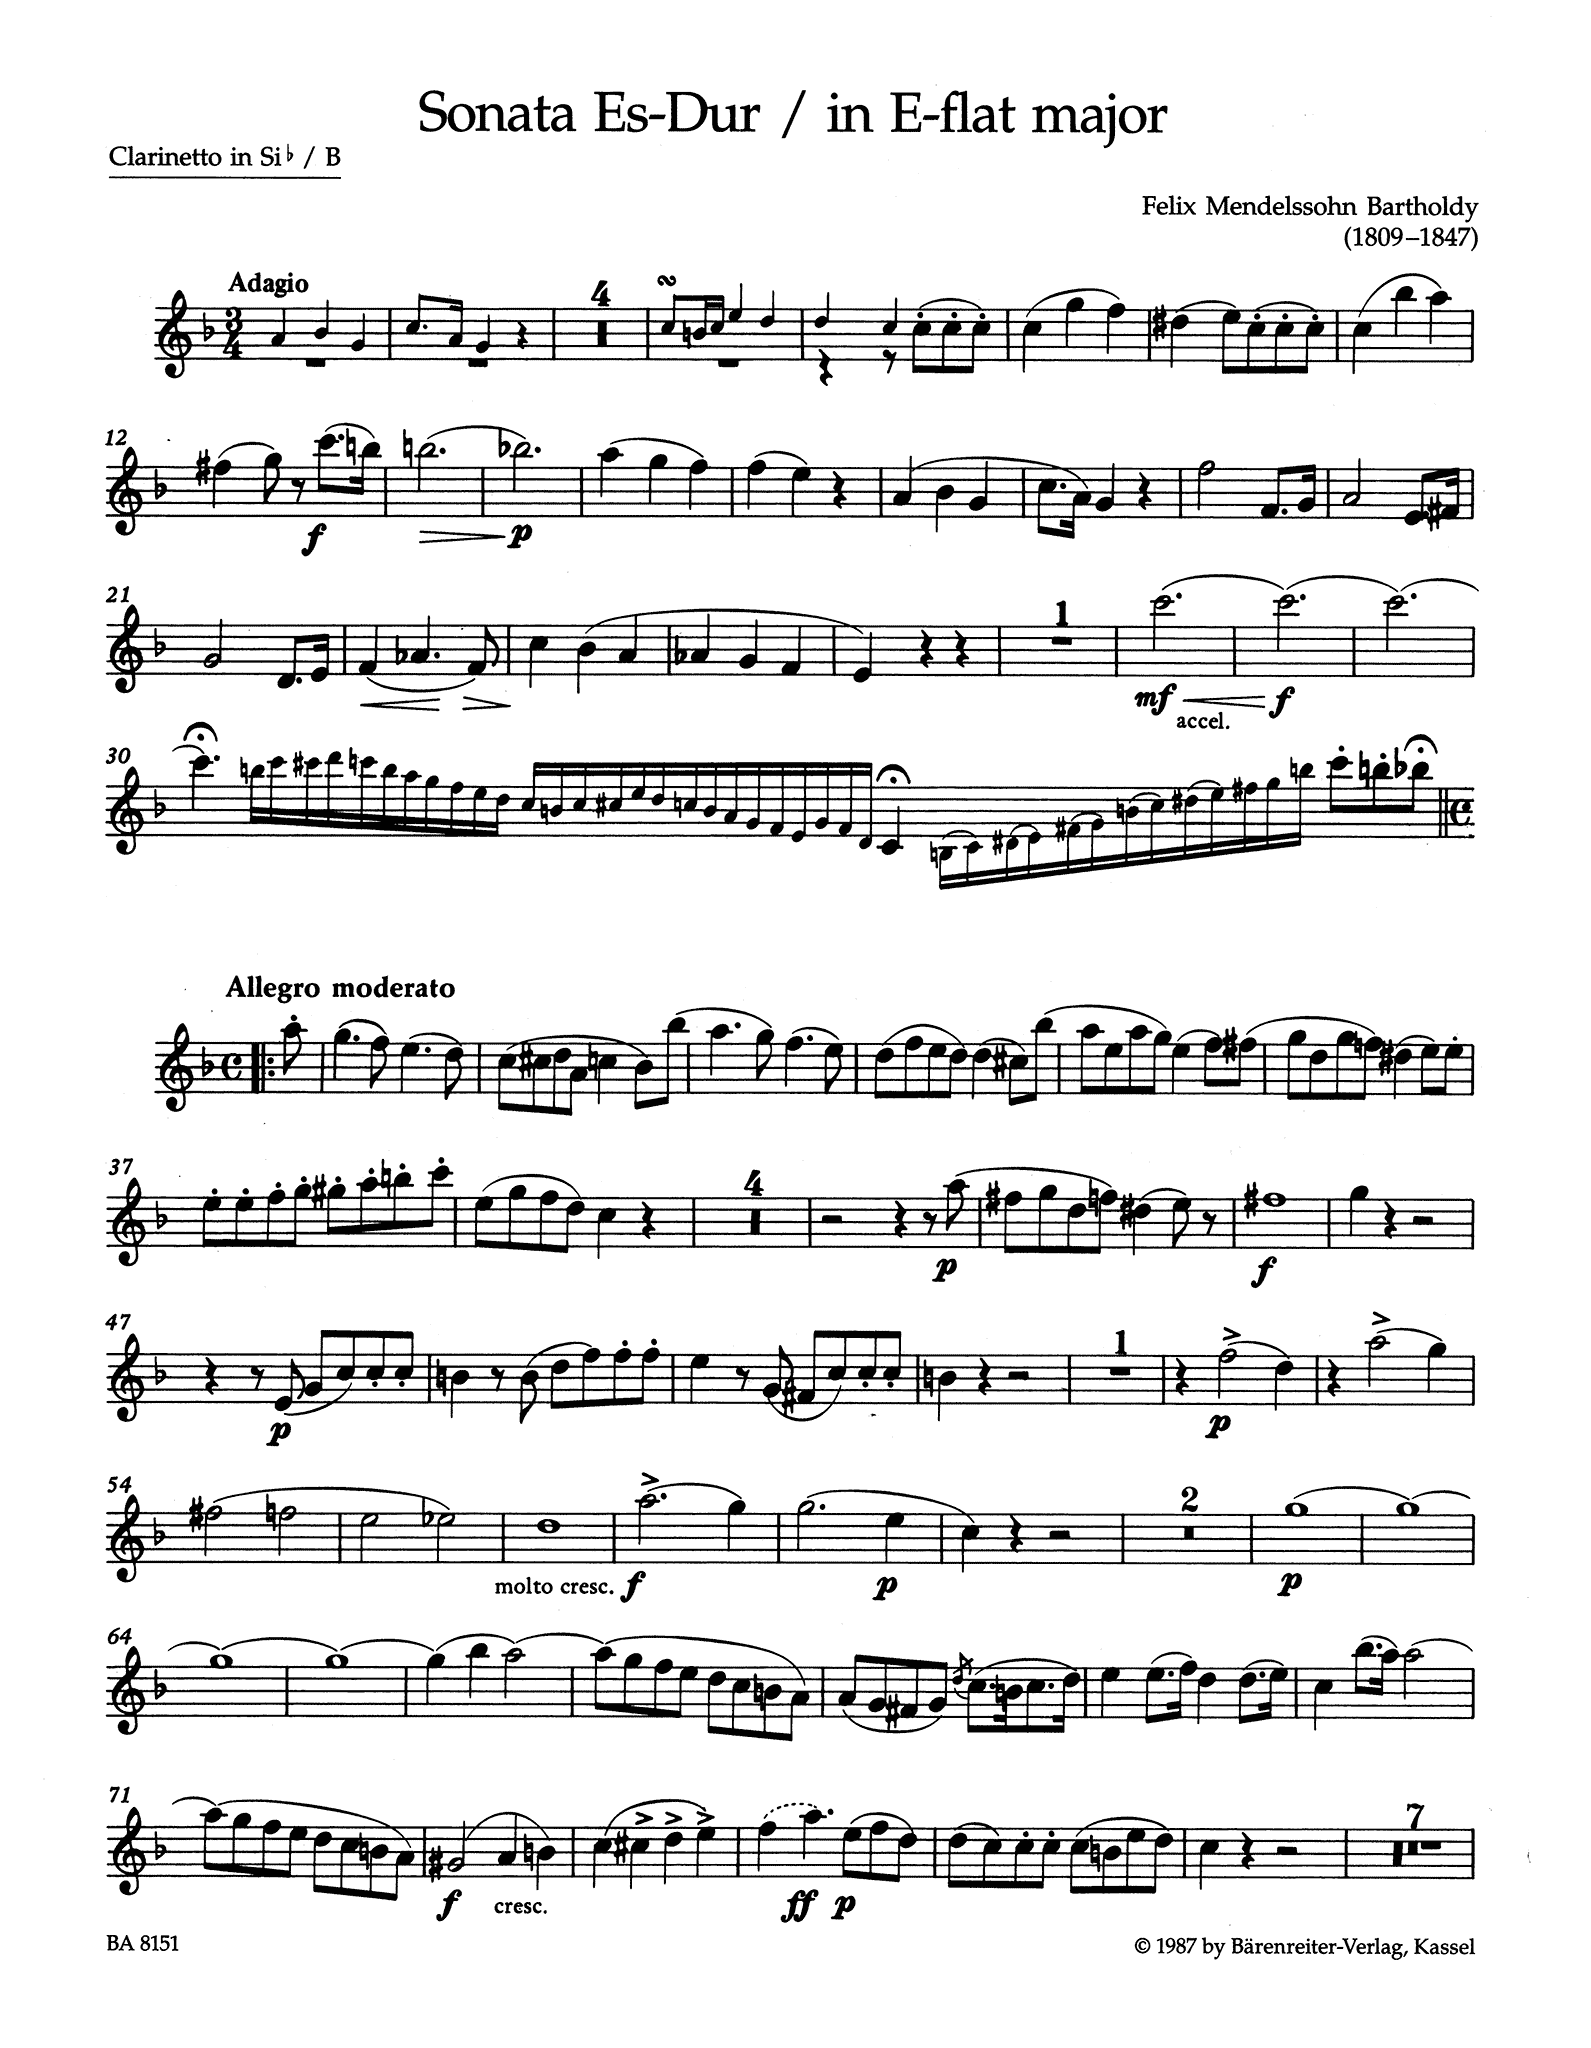 Sonata in E-flat Major for Clarinet & Piano Clarinet part